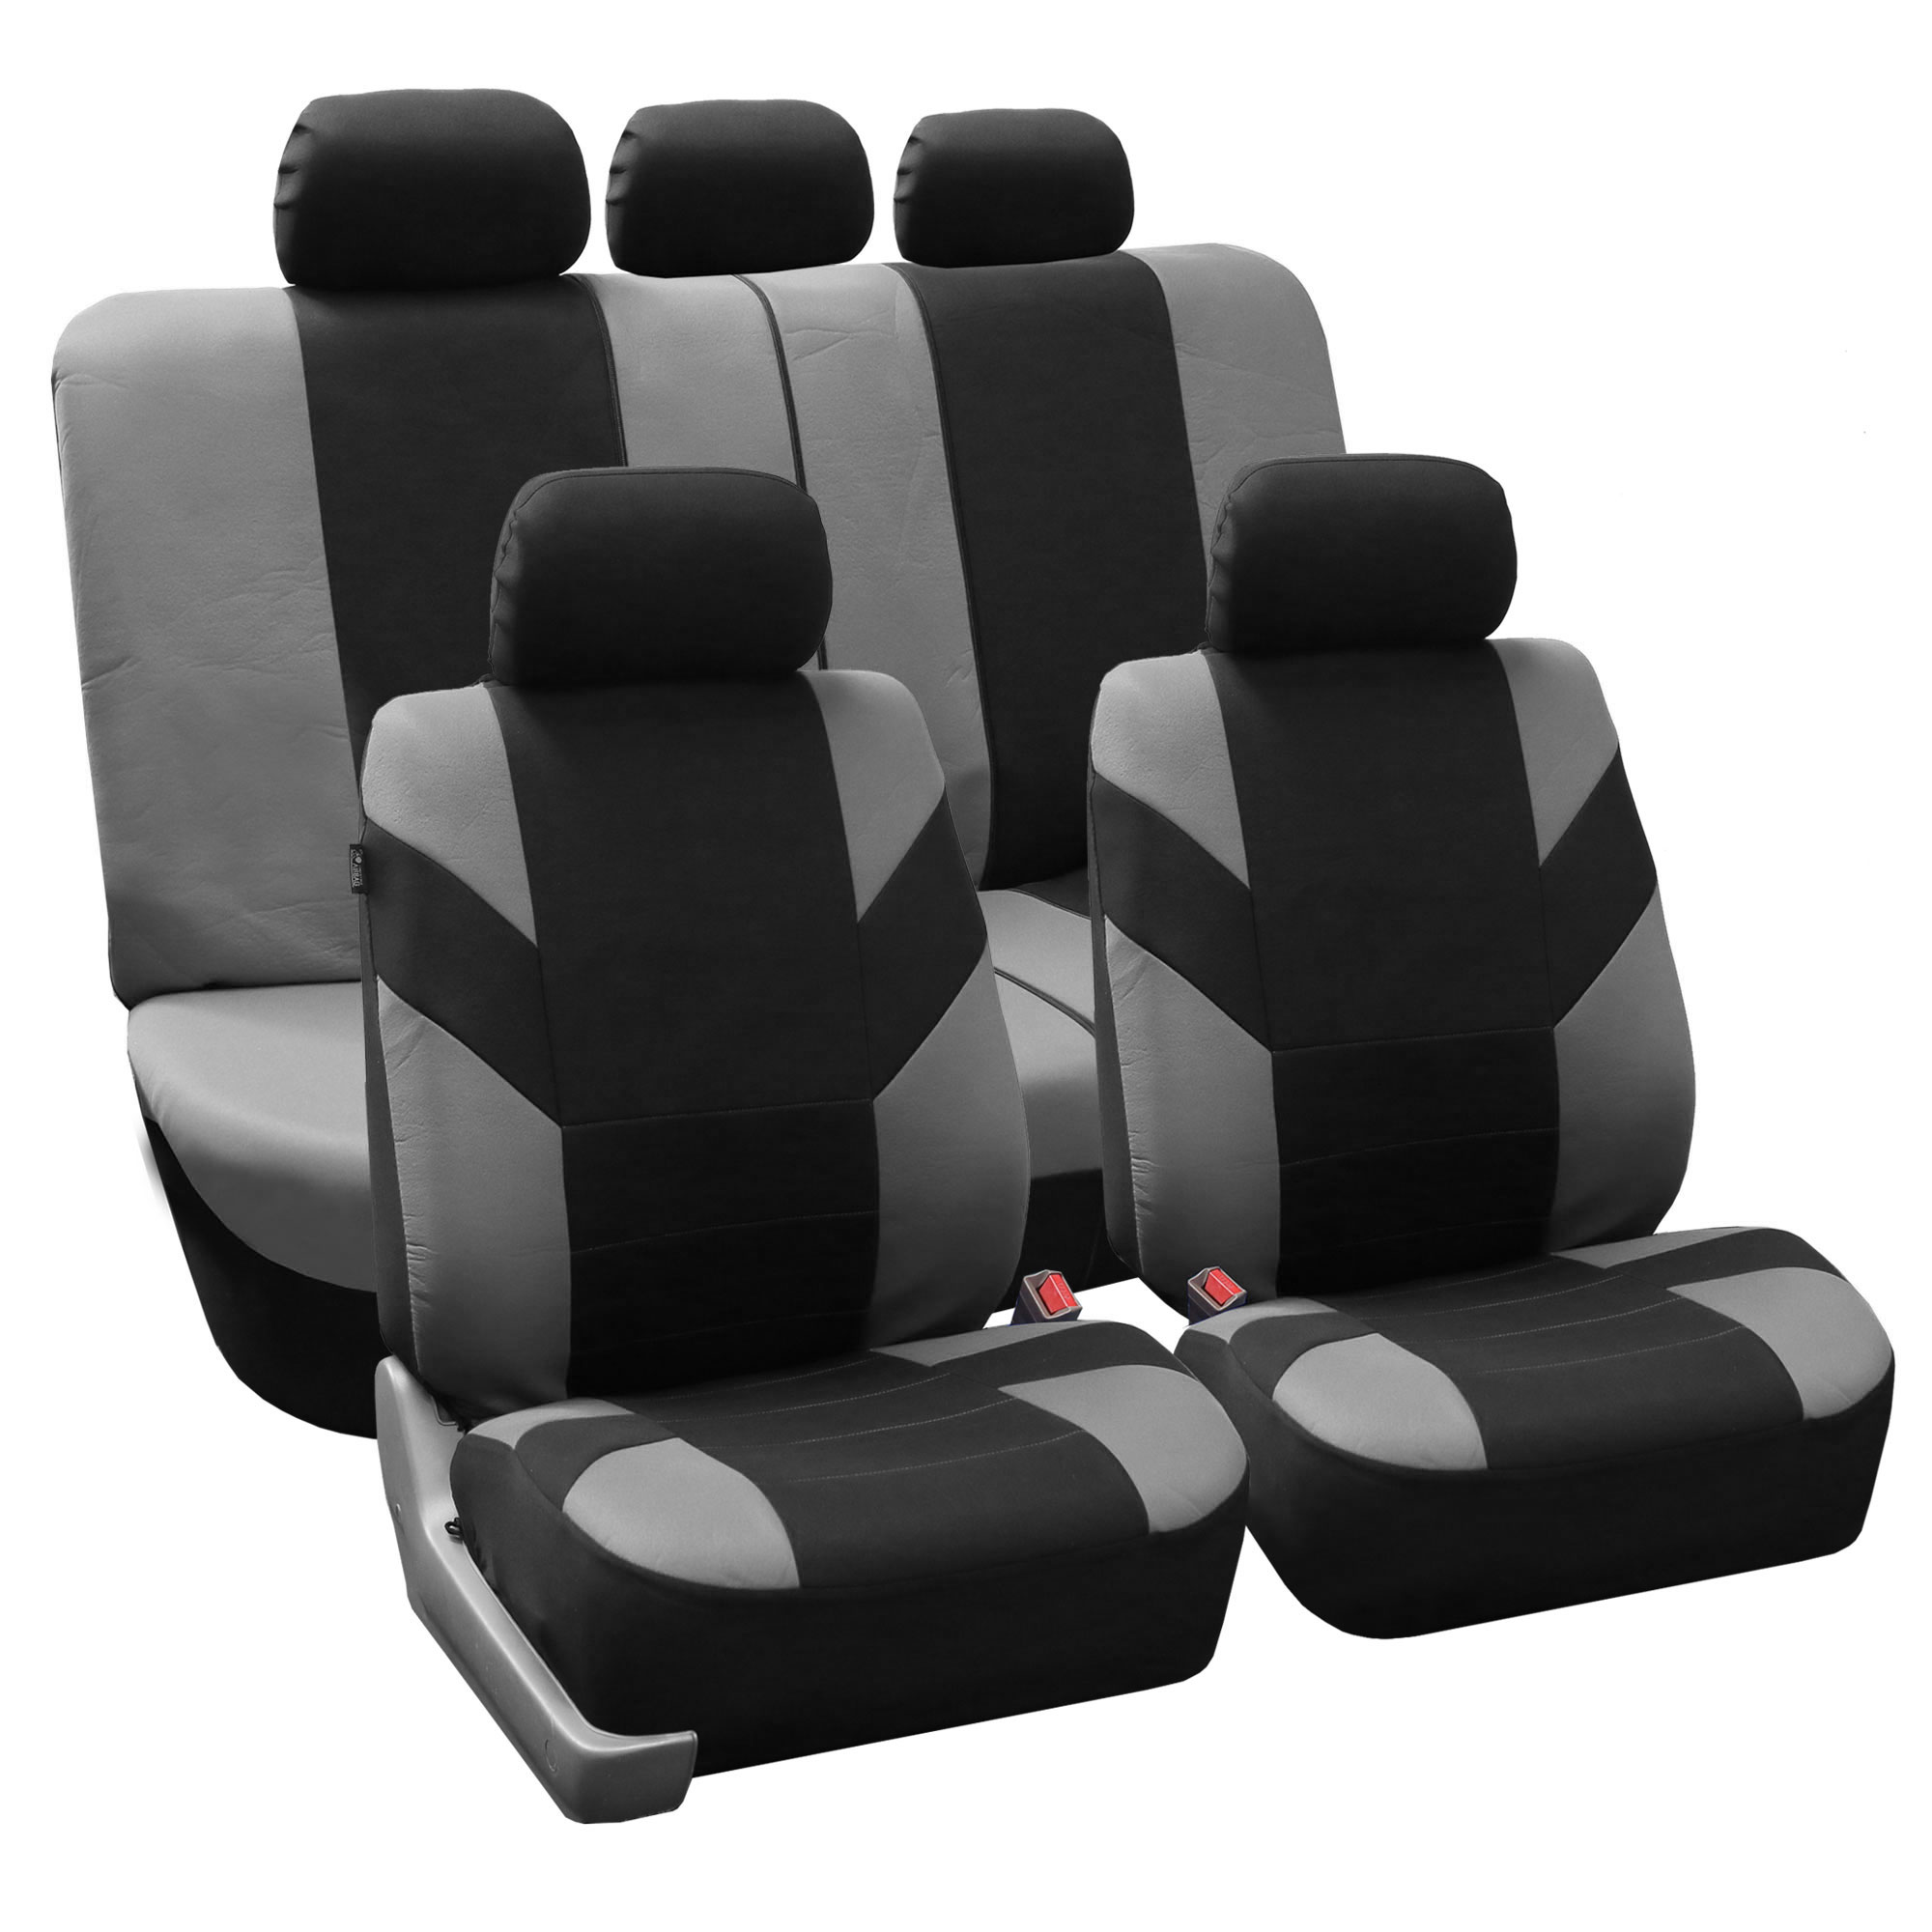 Road Master Seat Covers - Full Set FB072gray115